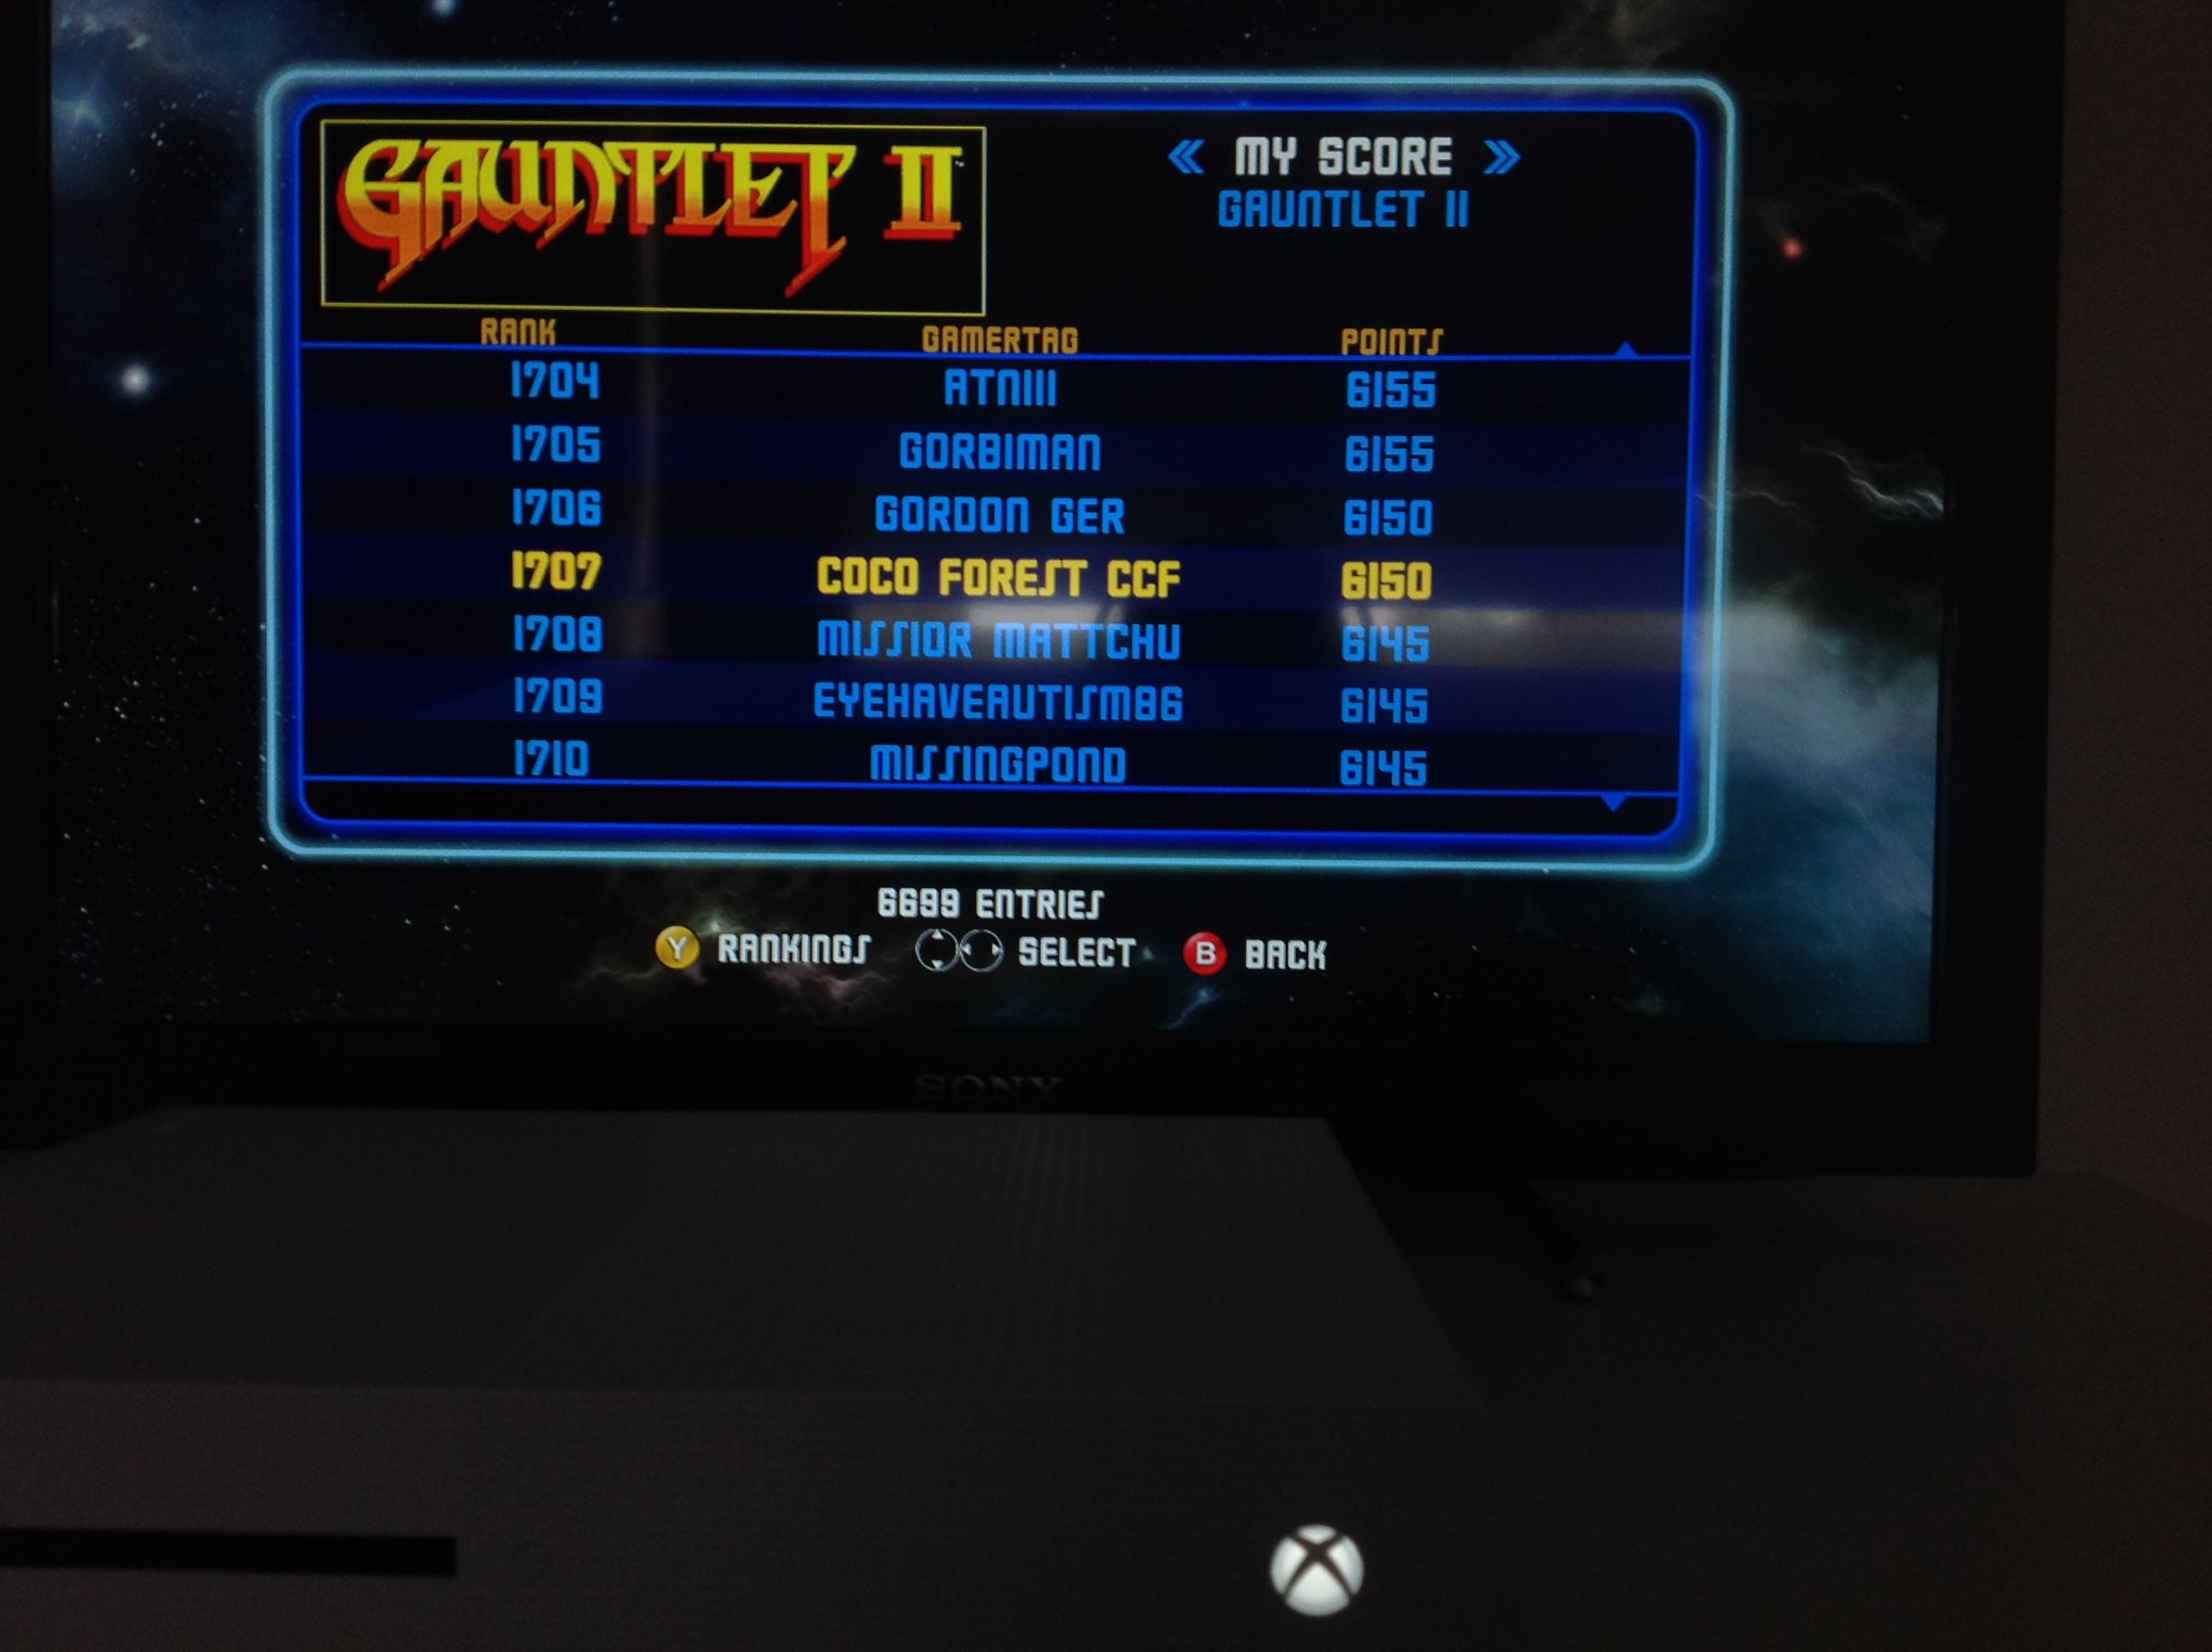 CoCoForest: Midway Arcade Origins: Gauntlet 2 [Medium] (Xbox 360) 6,150 points on 2019-05-27 01:42:31